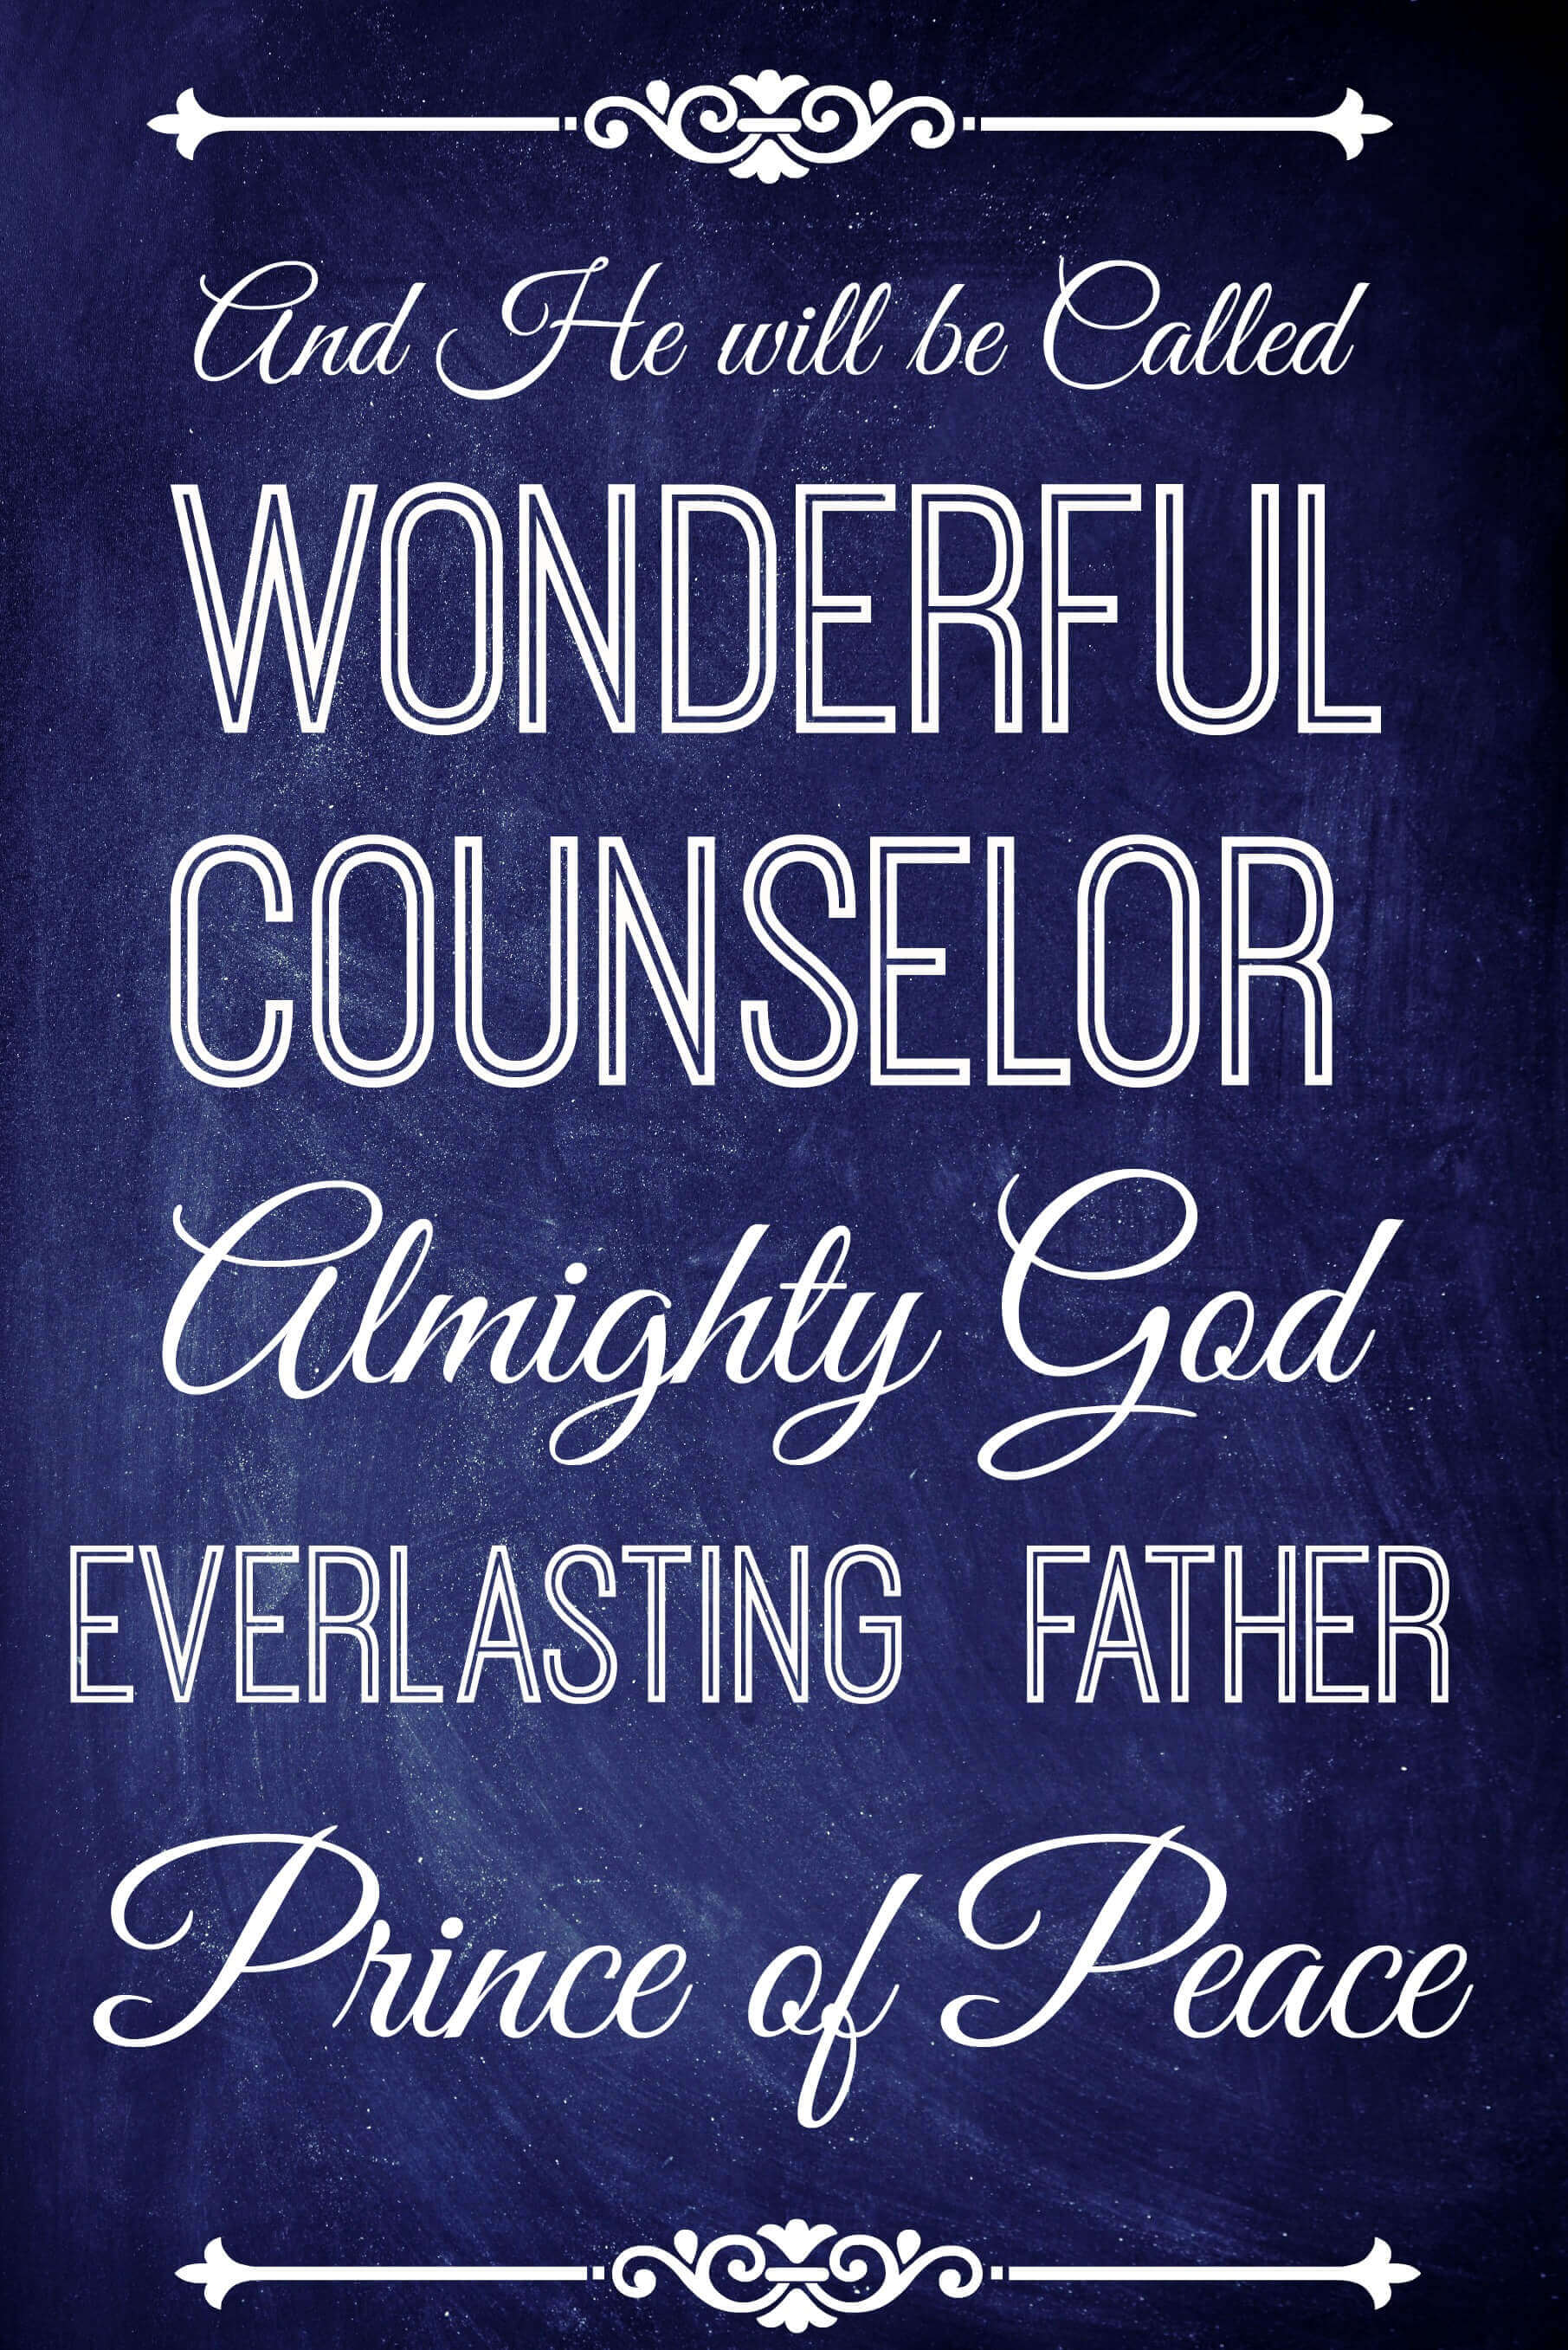 Christmas Quote Wonderful Counselor